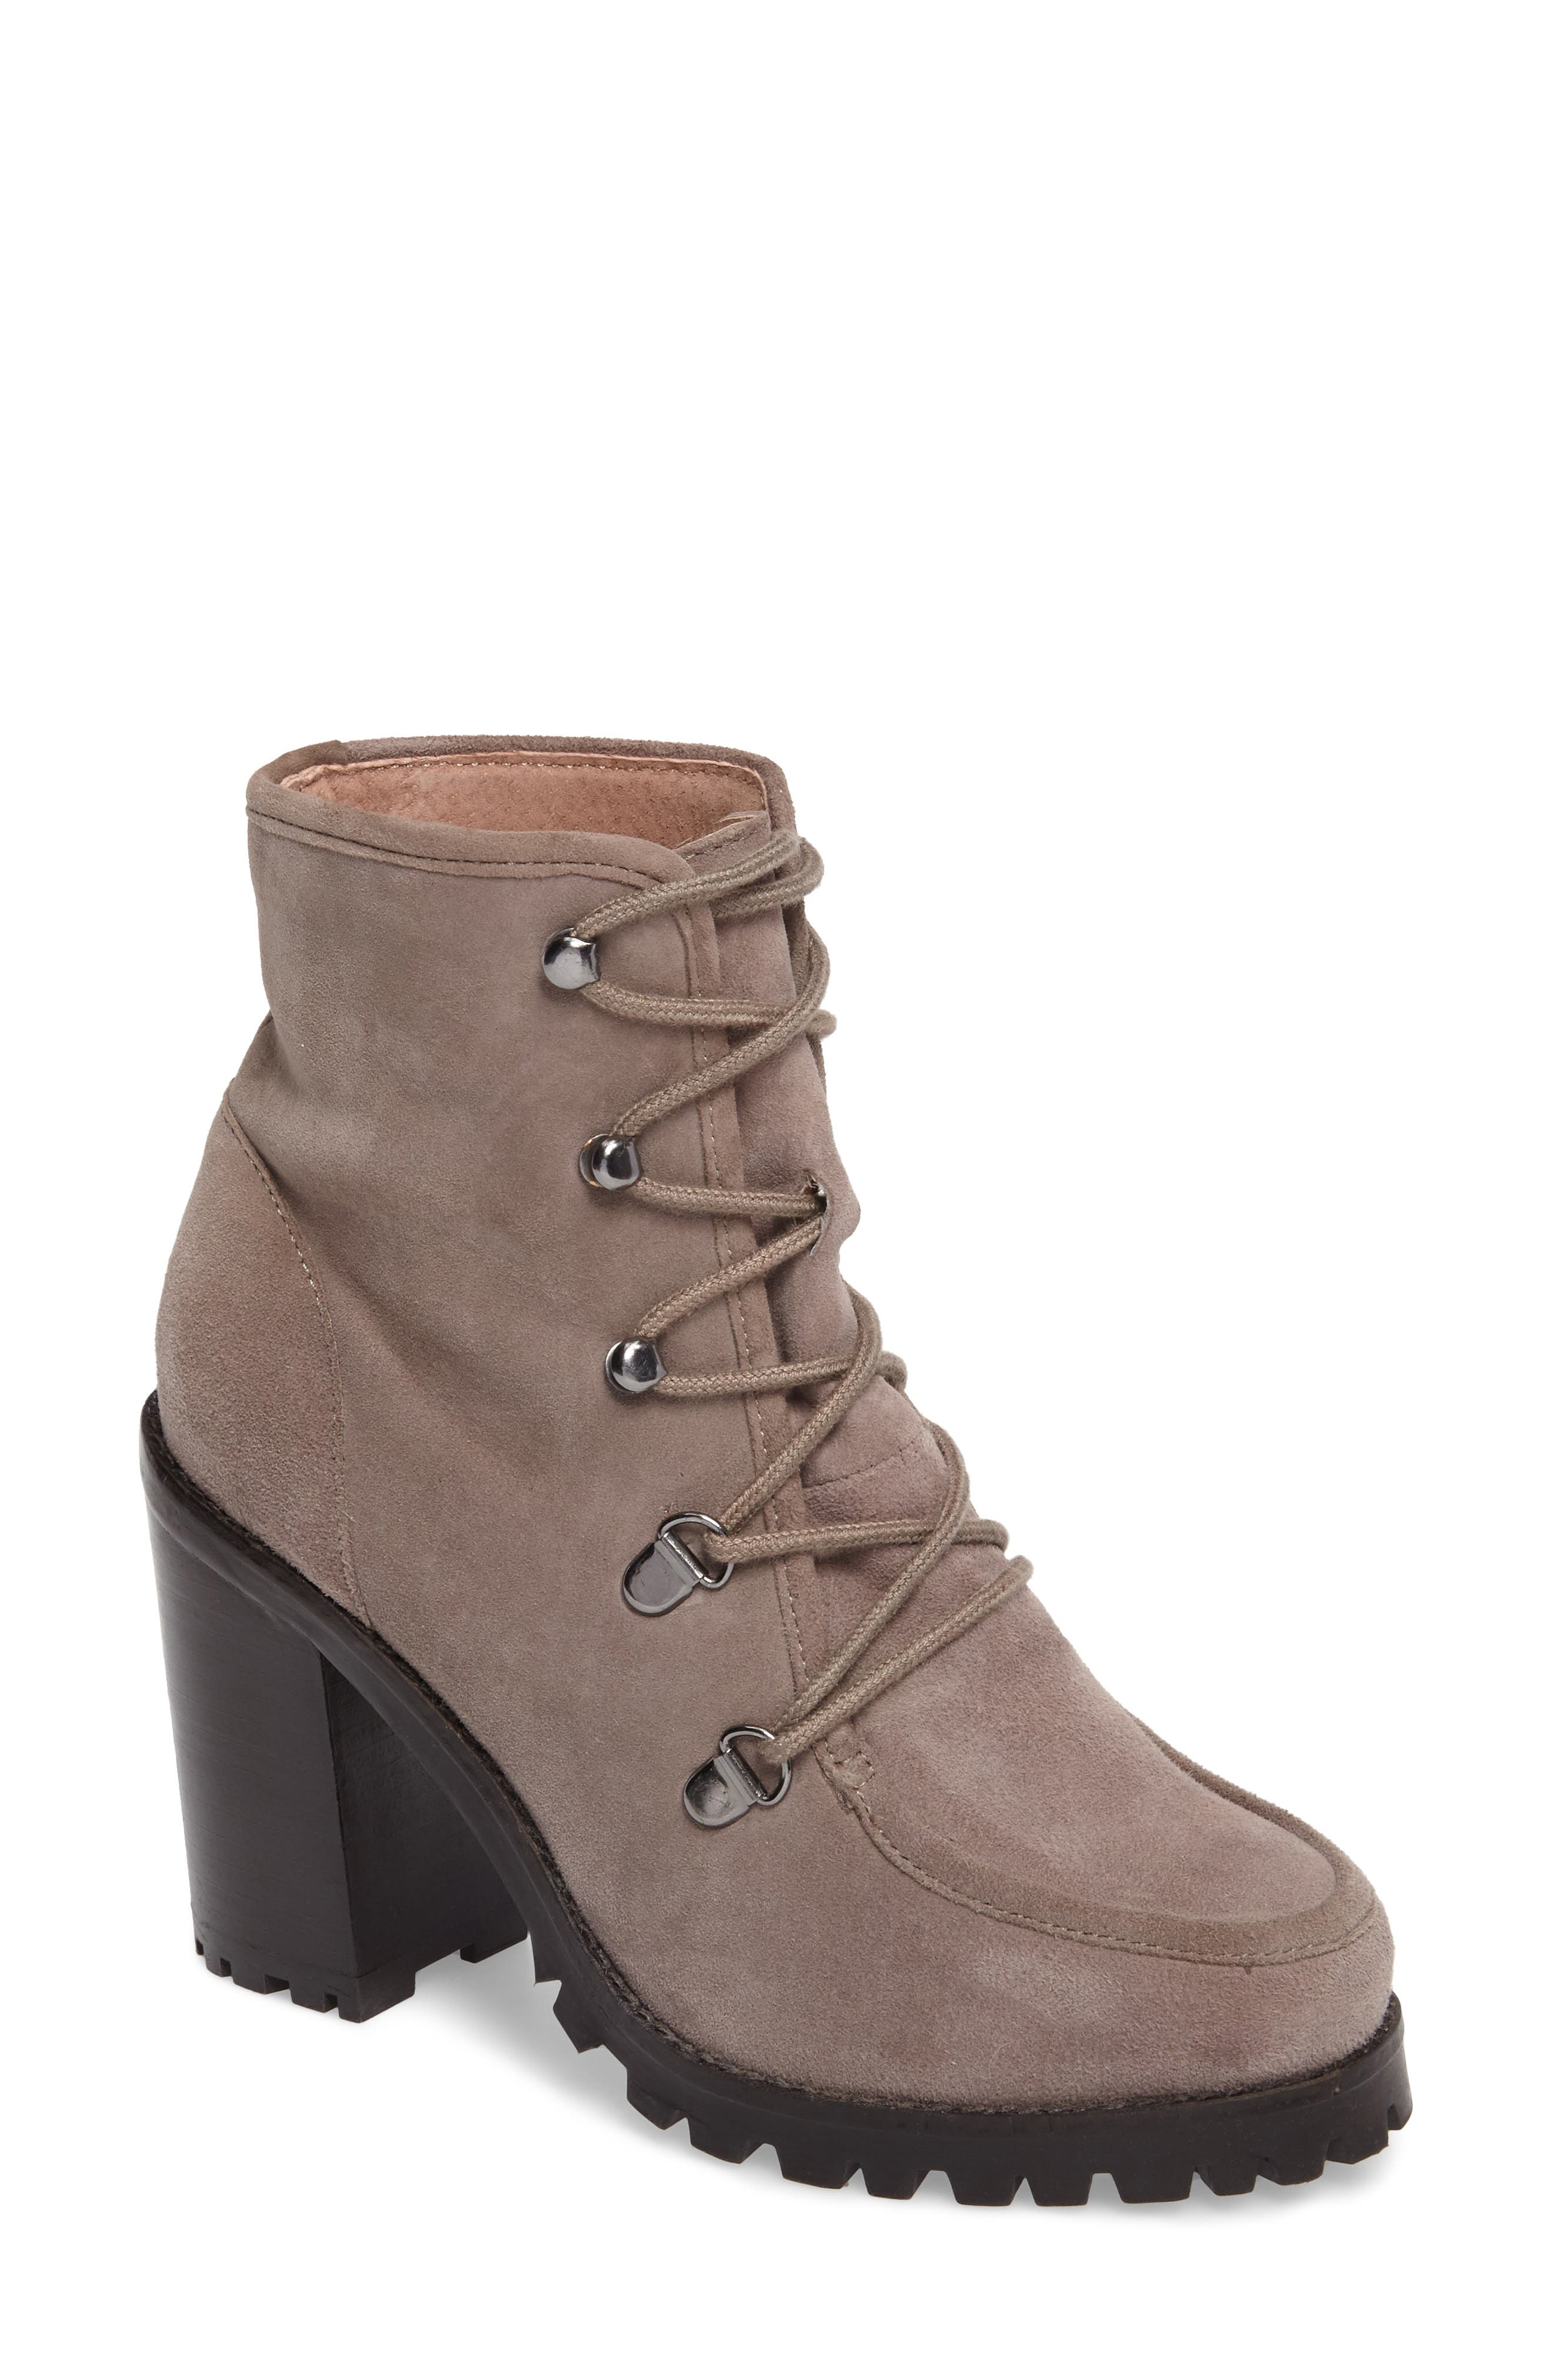 Theater Lace-Up Bootie,                             Main thumbnail 1, color,                             Taupe Suede